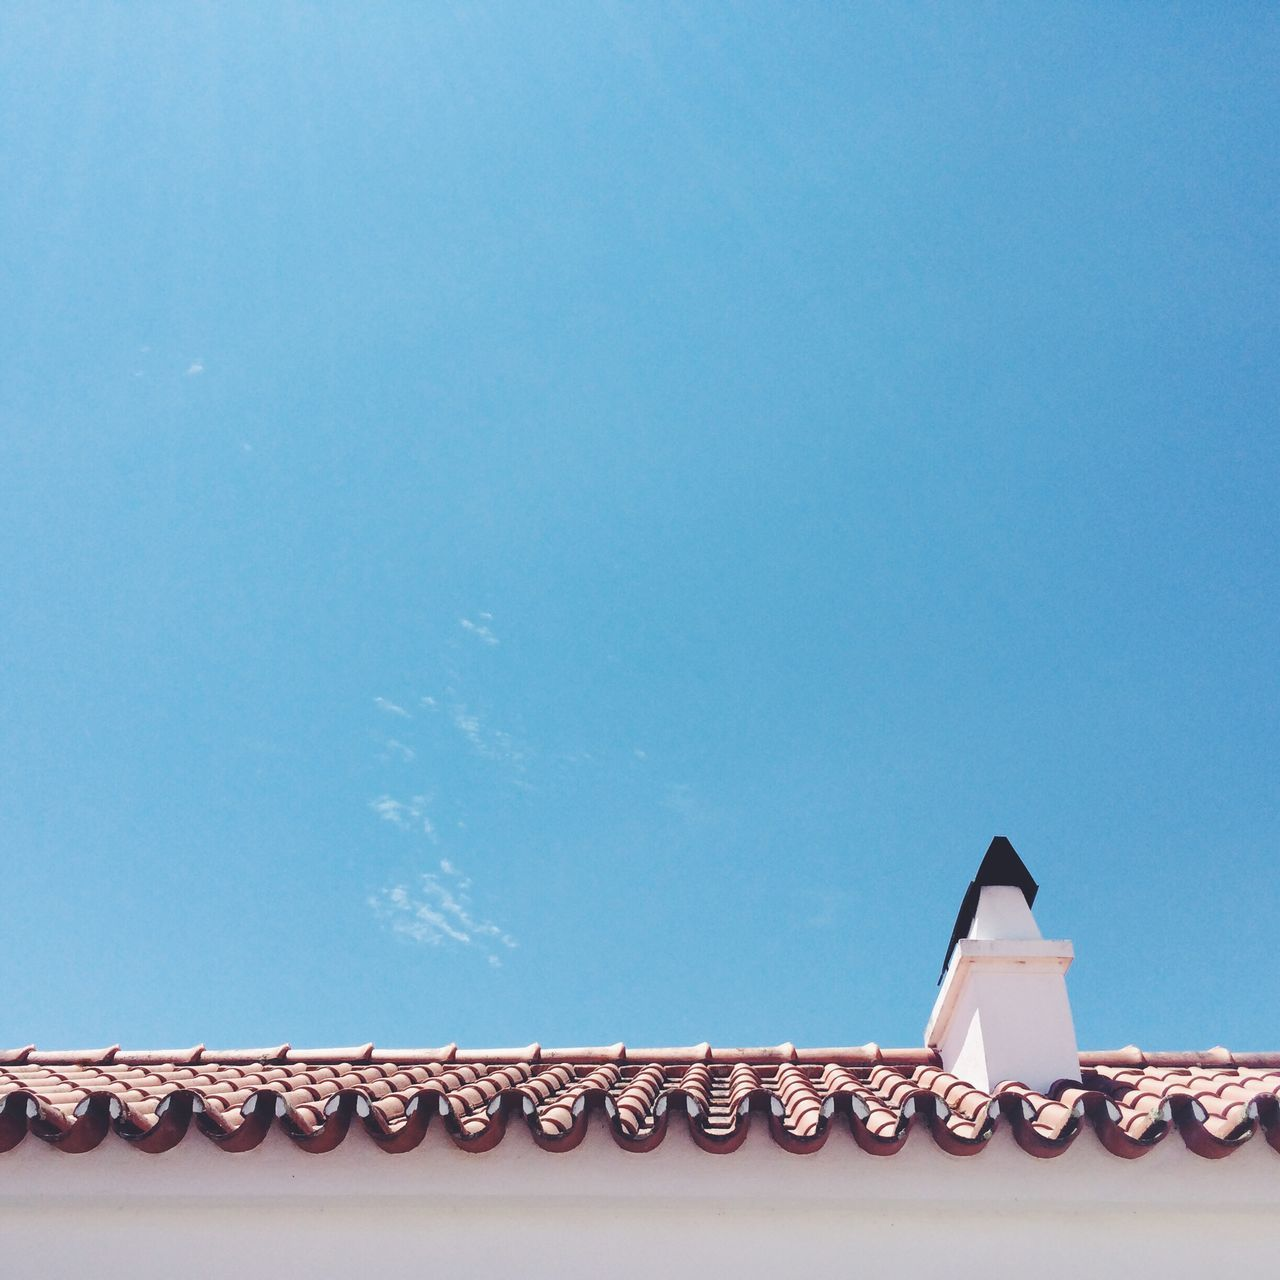 Beautiful stock photos of roof, Architecture, Blue, Building Exterior, Built Structure